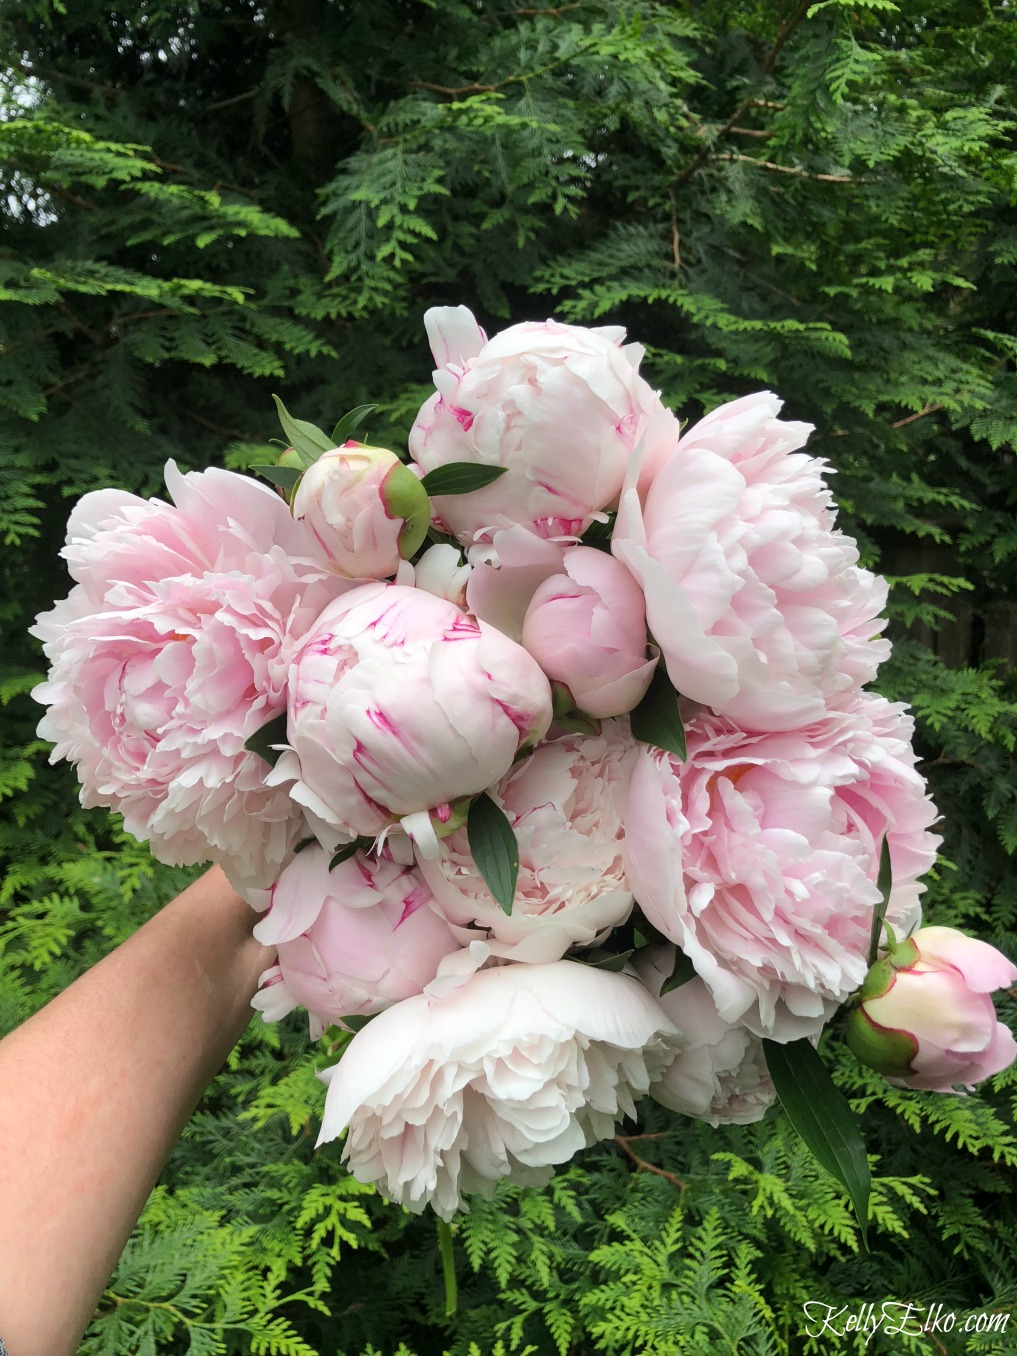 How to Make Peonies Last Longer! Tips for peony lovers so you can enjoy your blooms longer kellyelko.com #peonies #peony #perennials #gardening #gardeningtips #gardening